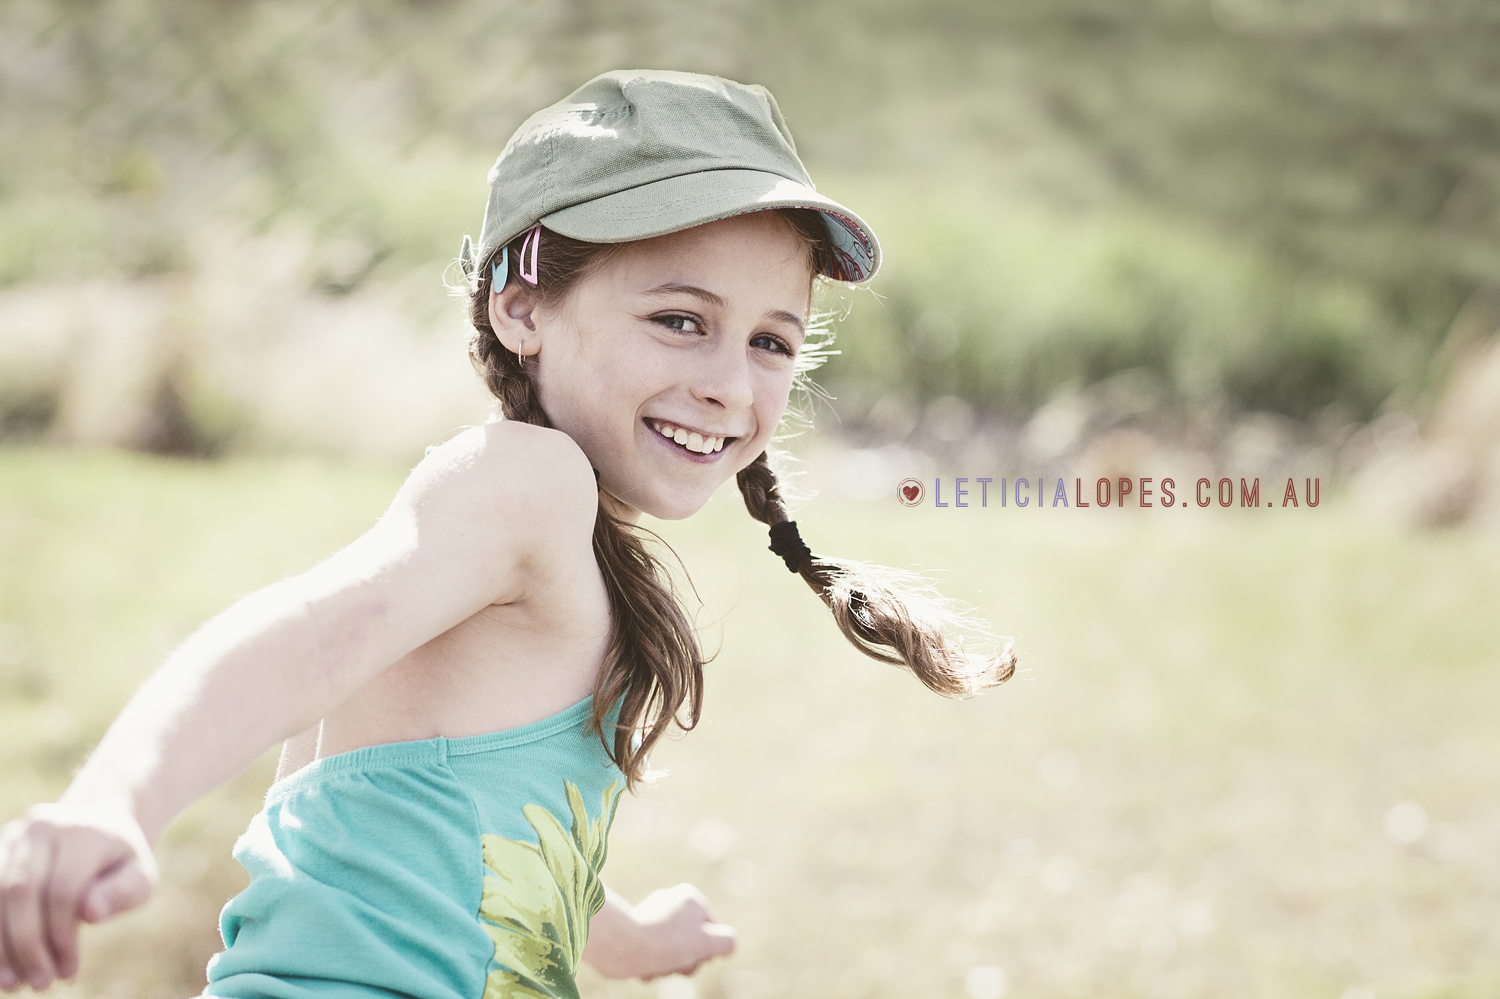 melbourne-kids-photographer-girl-happy.jpg